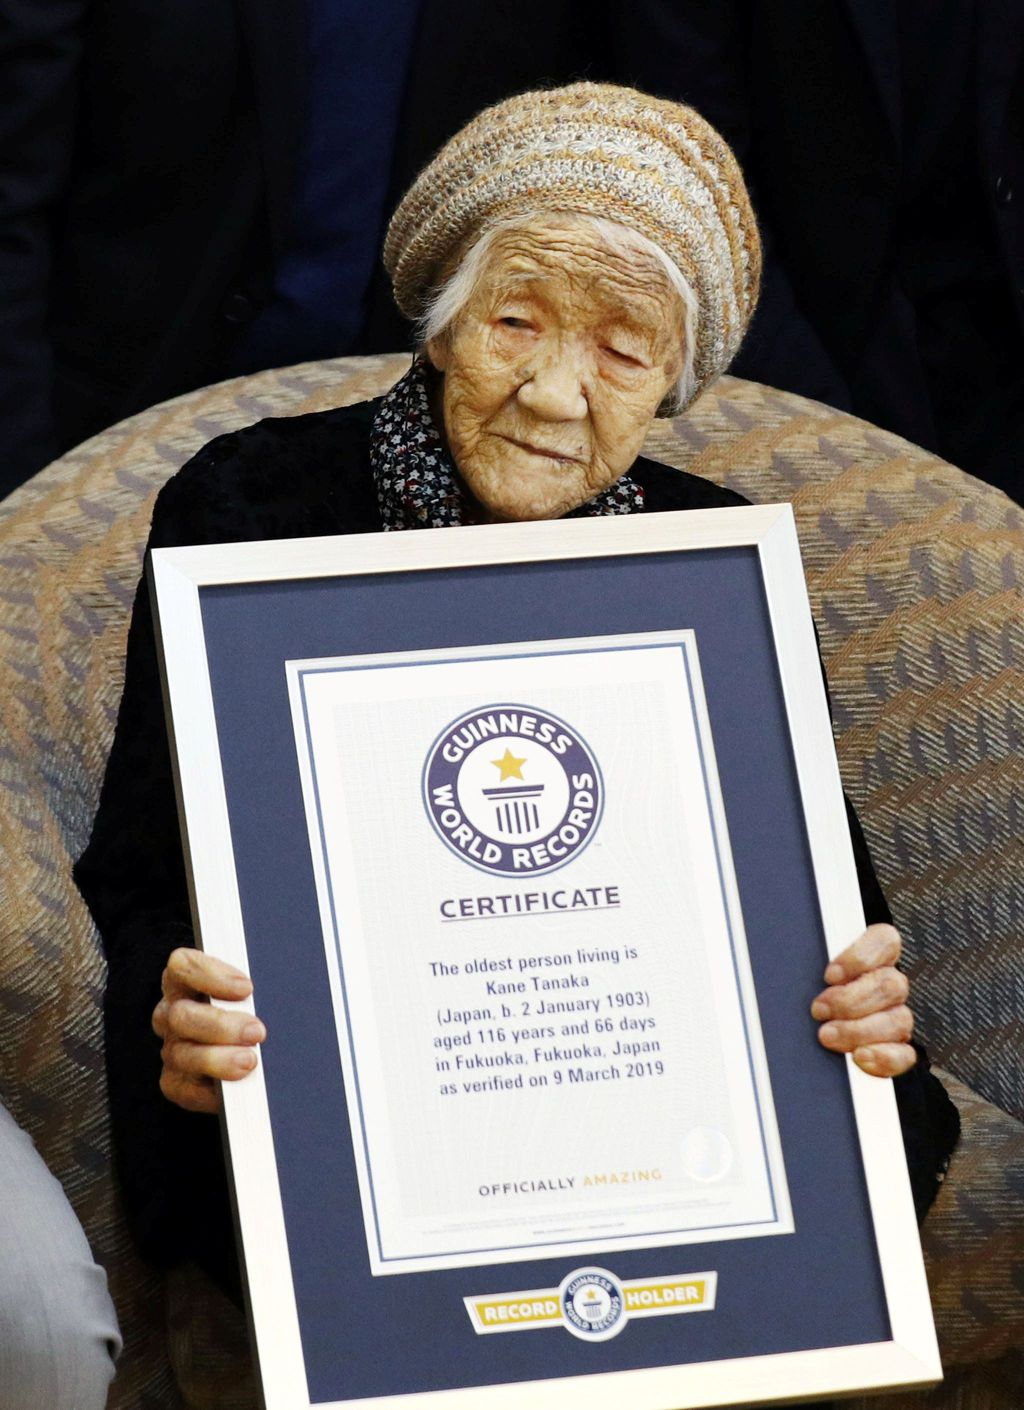 116-year-old Japanese woman Kane Tanaka holds a Guinness World Records certificate naming her as the world's oldest person living during a ceremony in Fukuoka, Japan March 9, 2019.  Mandatory credit Kyodo/via REUTERS ATTENTION EDITORS - THIS IMAGE WAS PROVIDED BY A THIRD PARTY. MANDATORY CREDIT. JAPAN OUT. NO COMMERCIAL OR EDITORIAL SALES IN JAPAN.